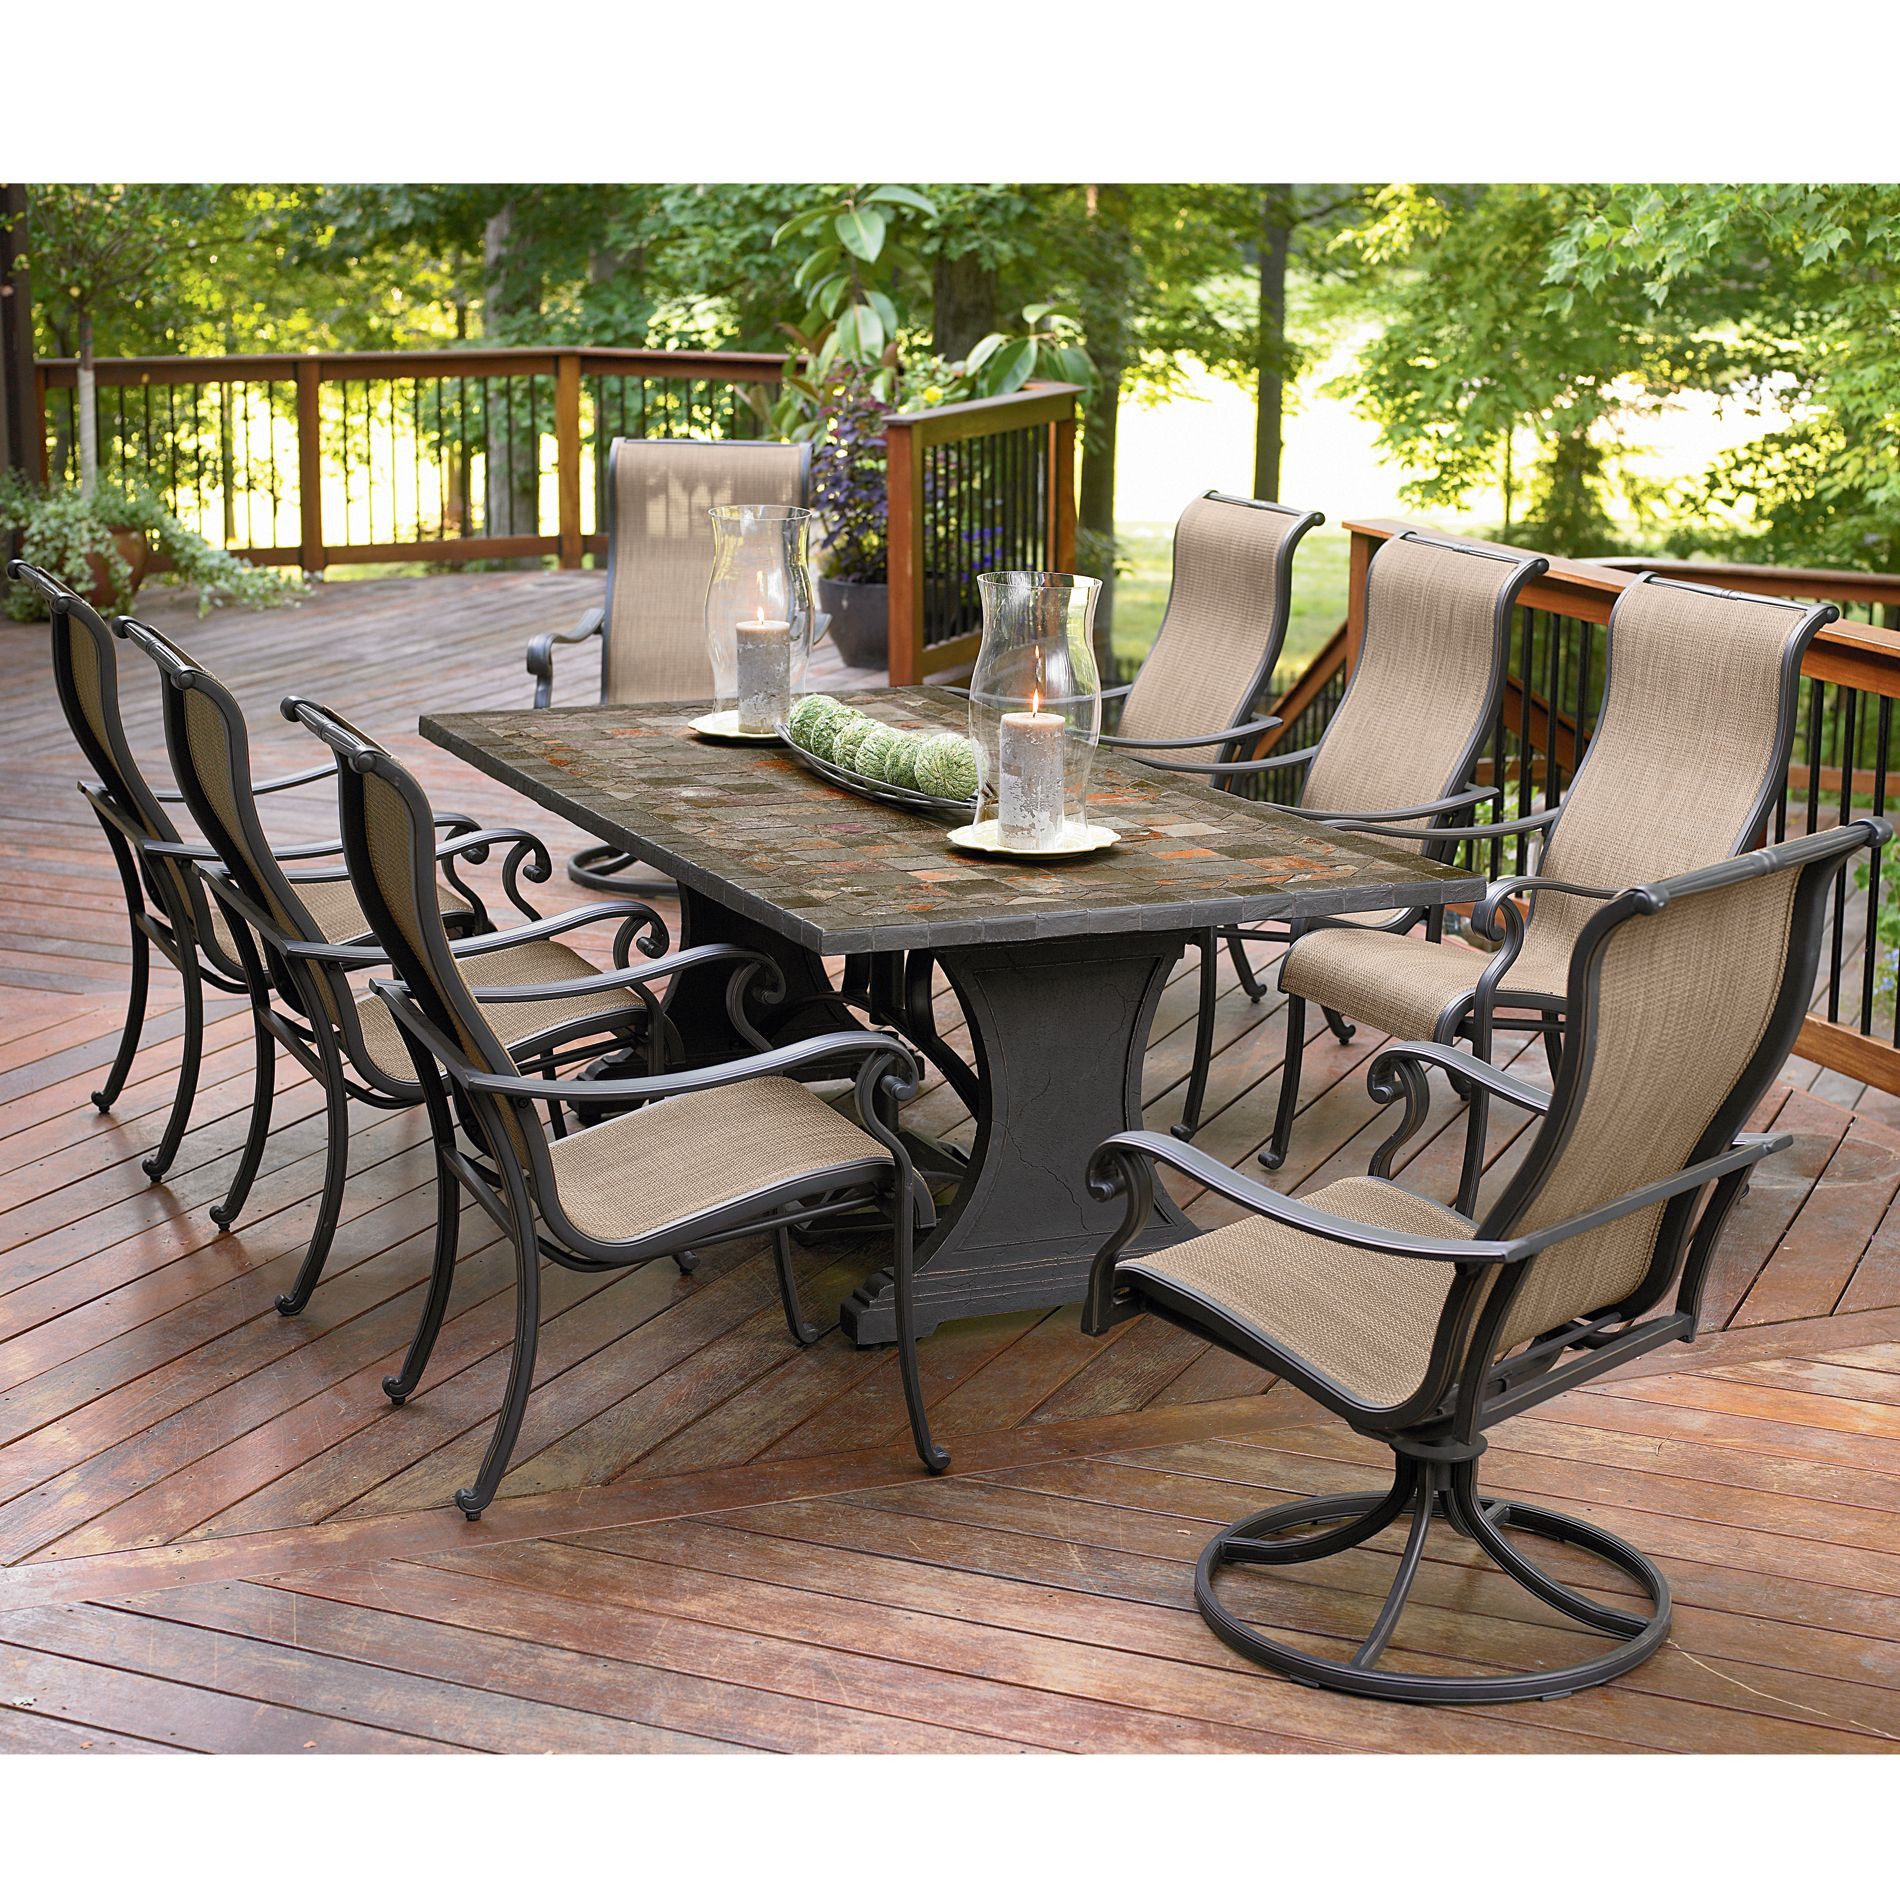 Best ideas about Patio Dining Table Clearance . Save or Pin Literarywondrous Patio Table And Chairseca Now.